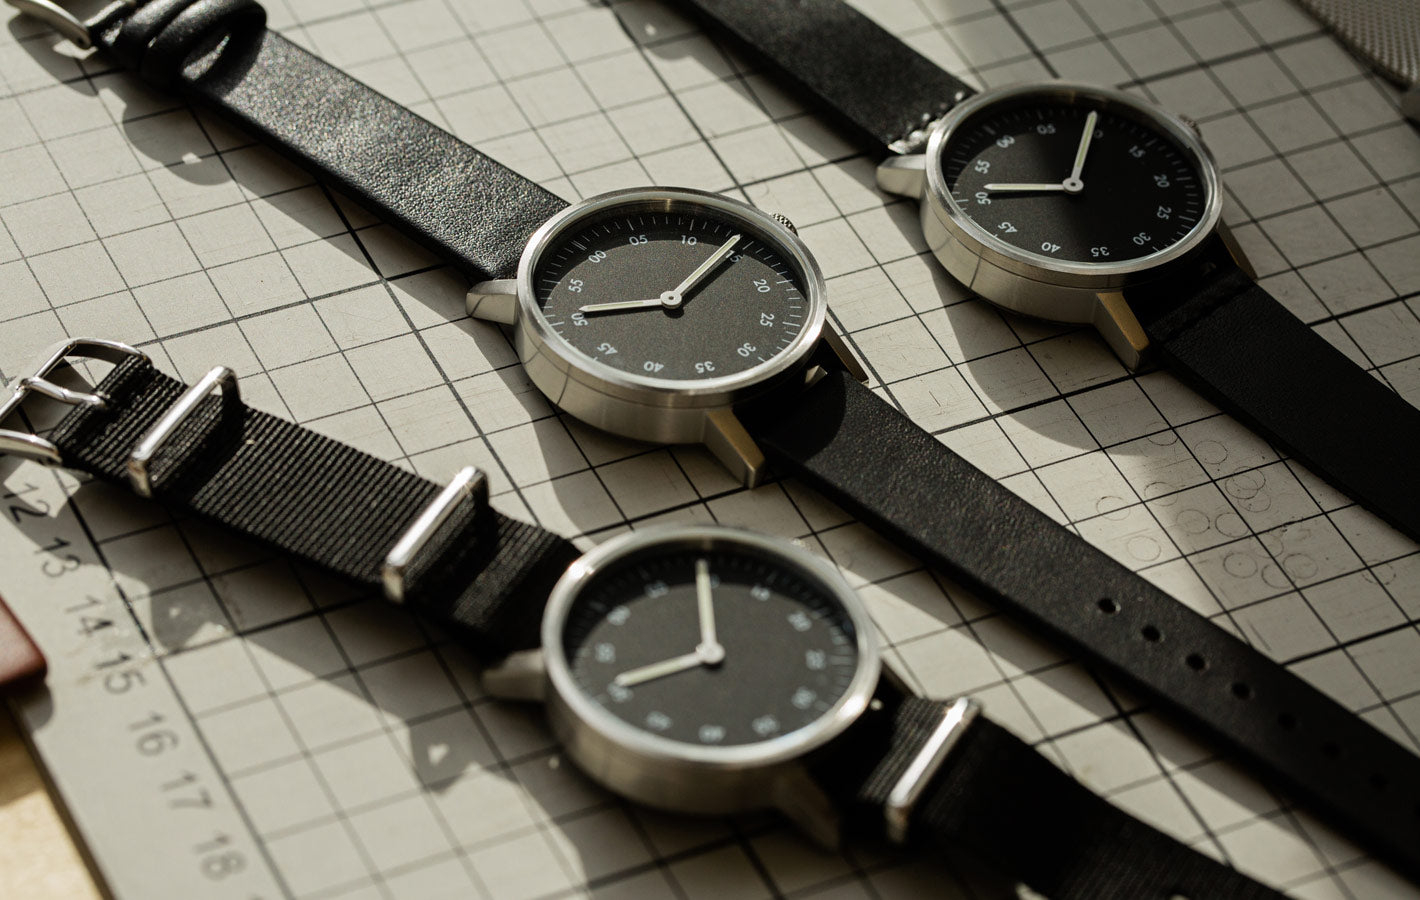 The V03B collection from VOID Watches, designed by David Ericsson.